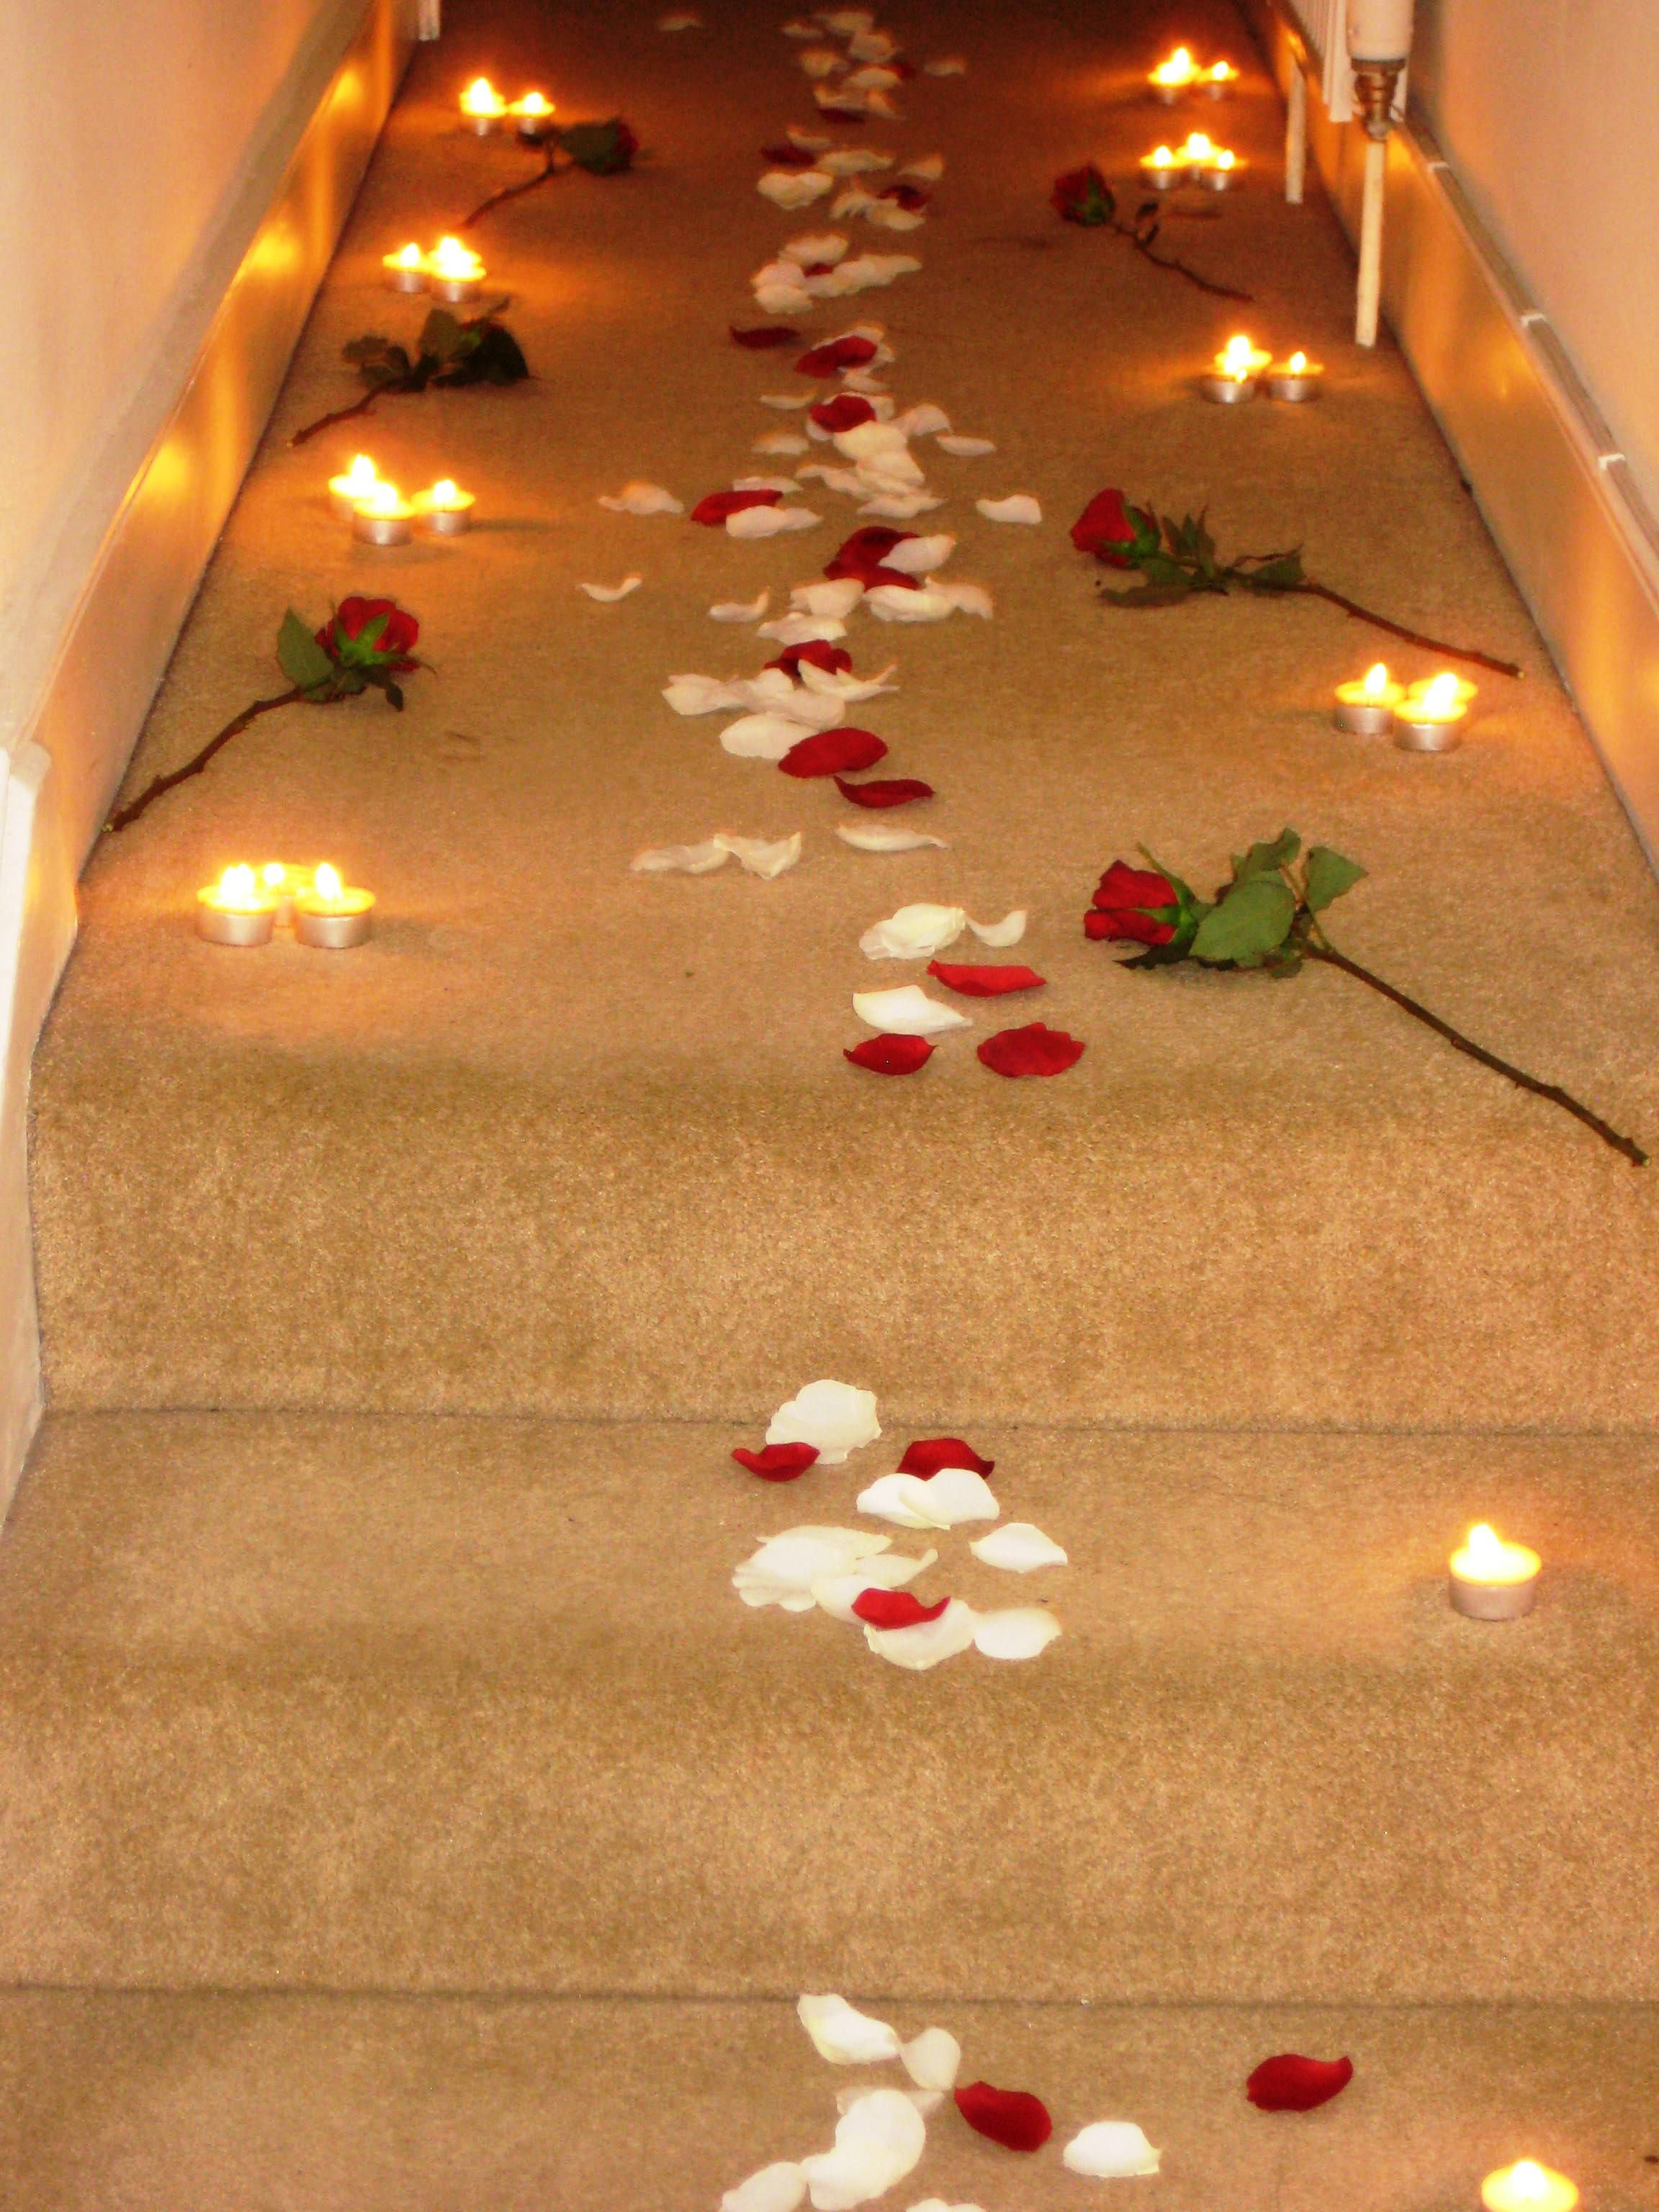 Romantic Candles And Roses Bedroom A rose petal path. Romantic Candles And Roses Bedroom A rose petal path